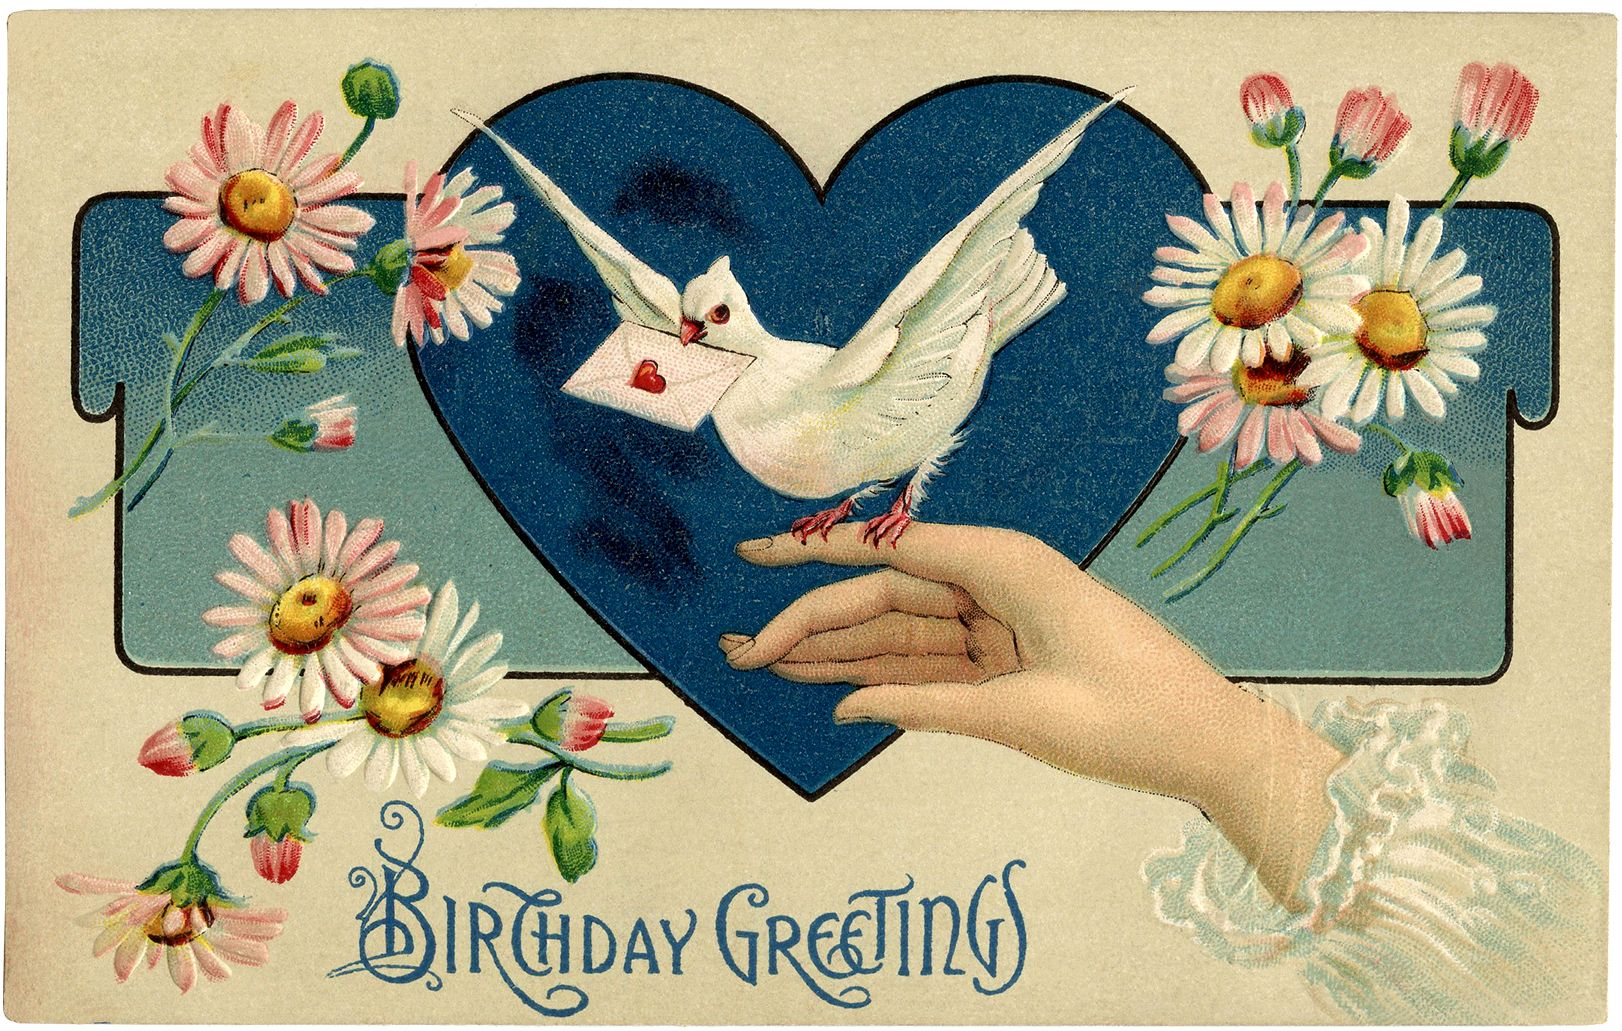 Vintage Birthday Illustration Vintage Birthday Cards Images And